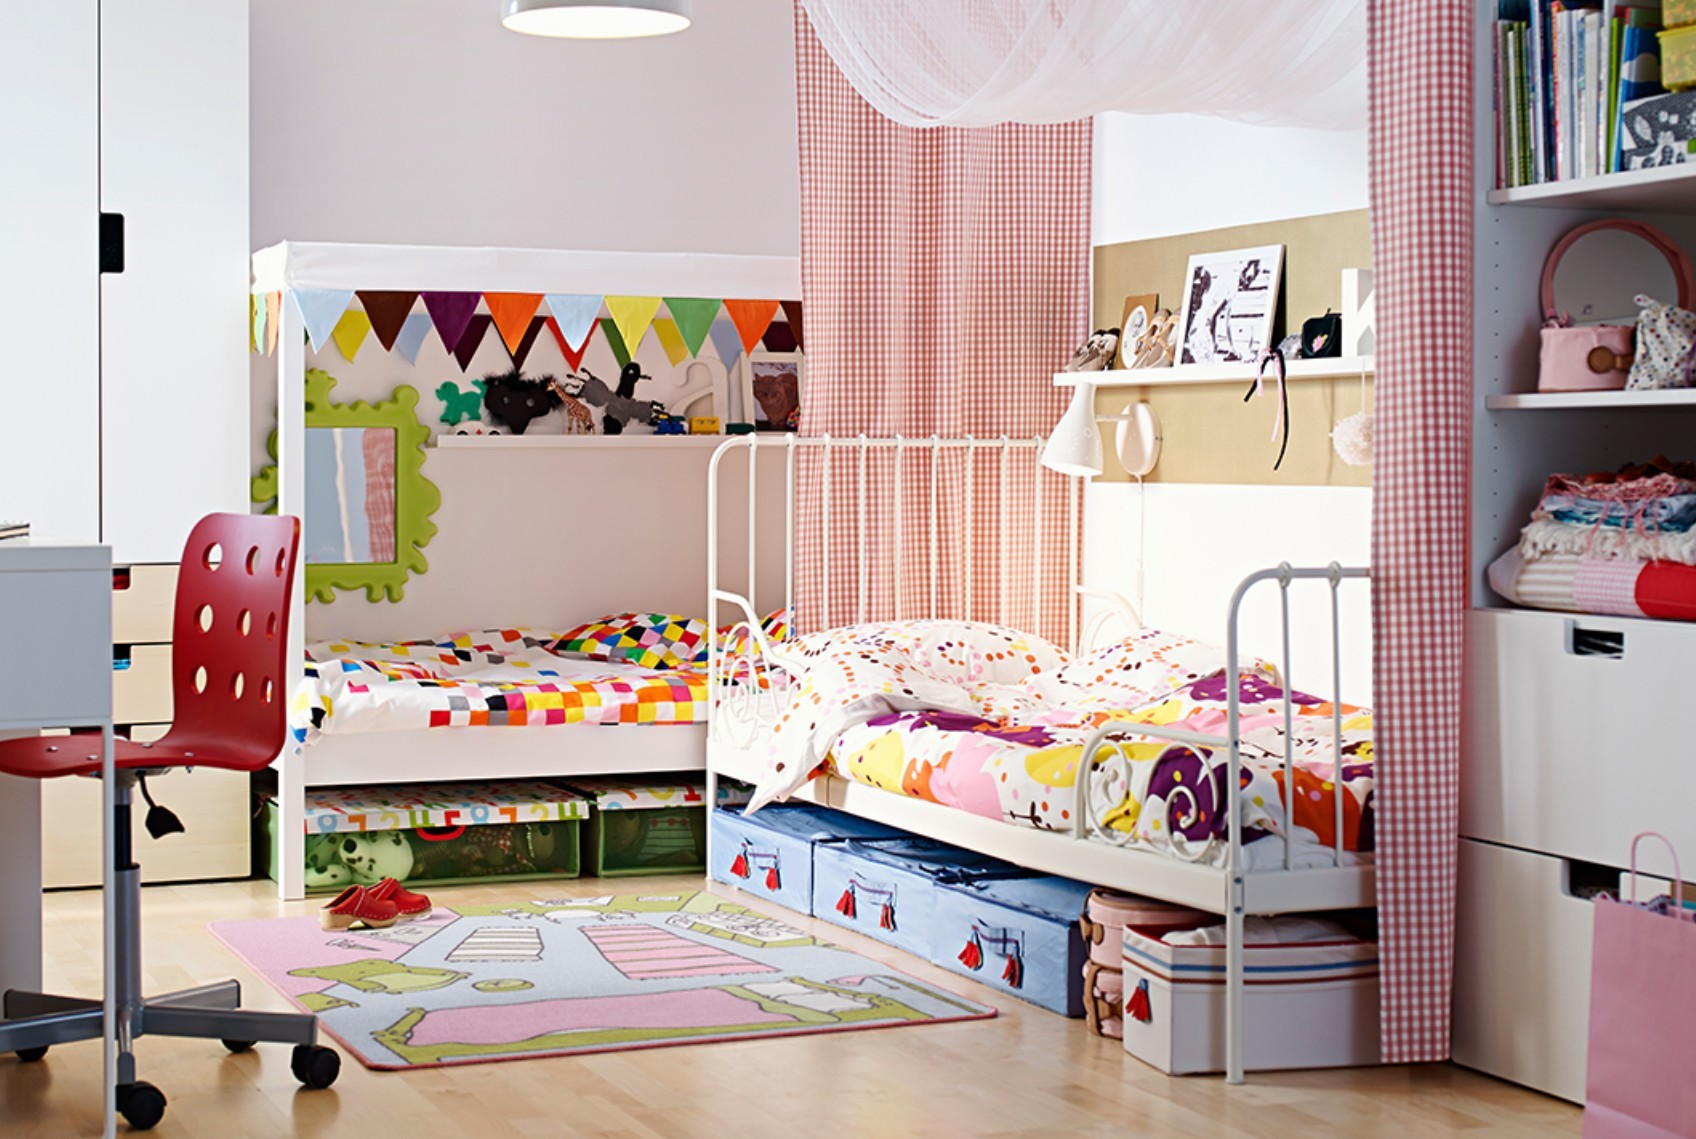 Vintage furniture brings unique magic into a modern kids room